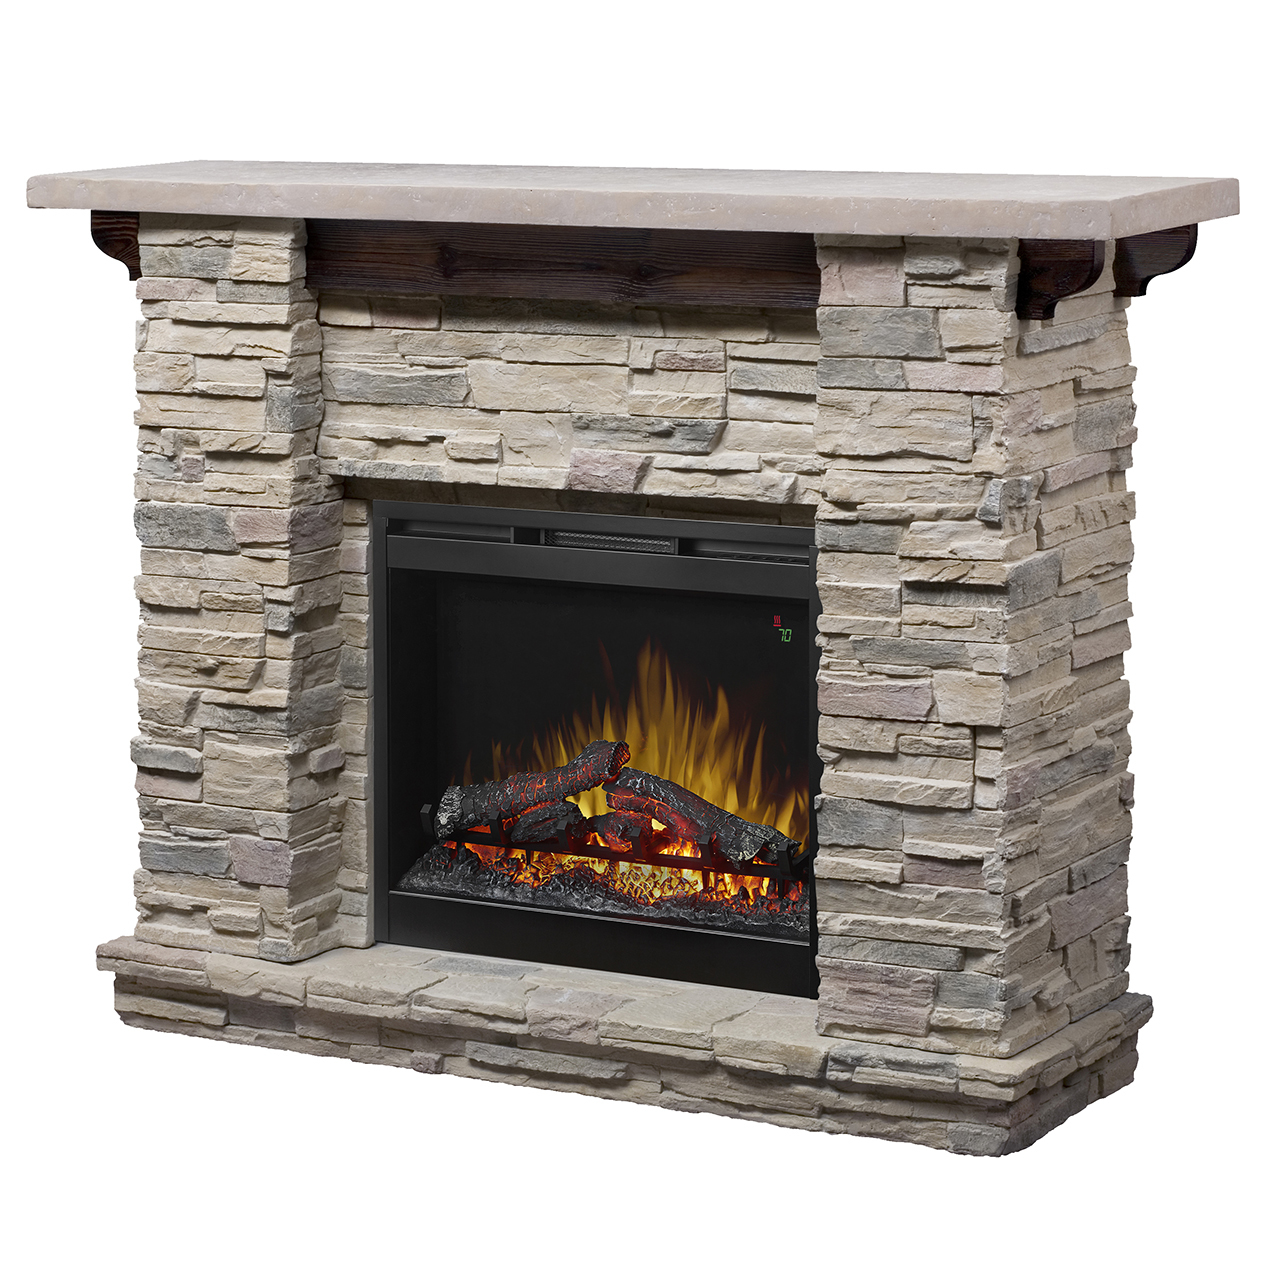 Featherston Mantel Electric Fireplace By Dimplex 65291 Callan Furniture